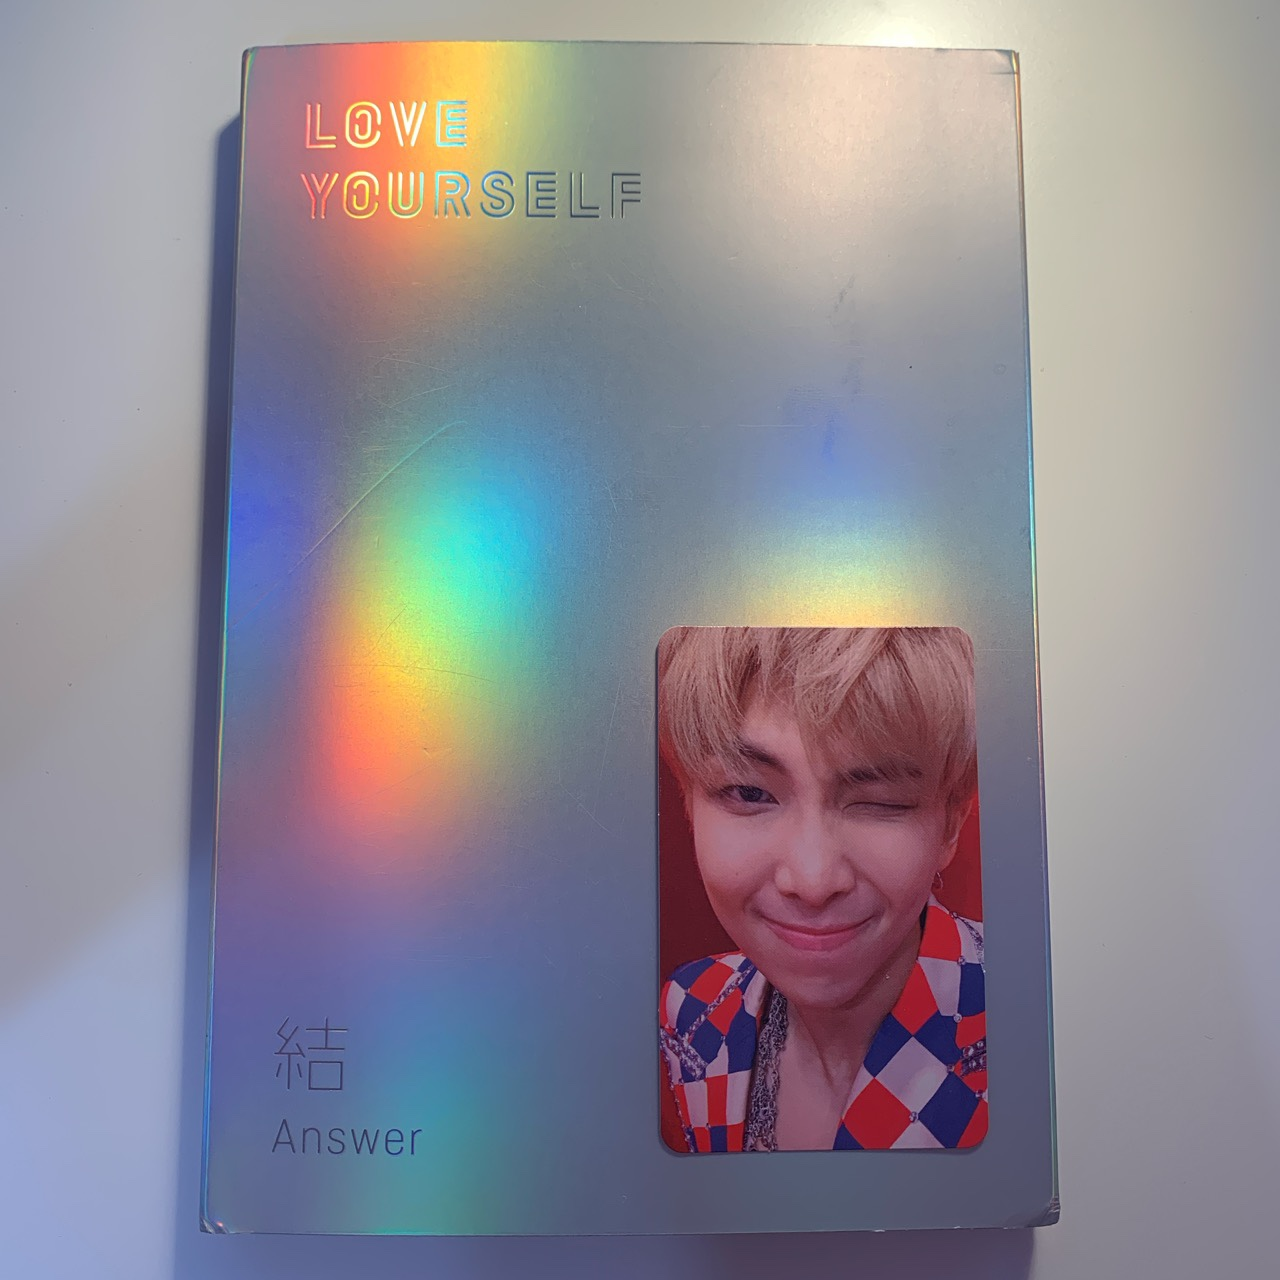 Product Image 1 - BTS LOVE YOURSELF ANSWER version